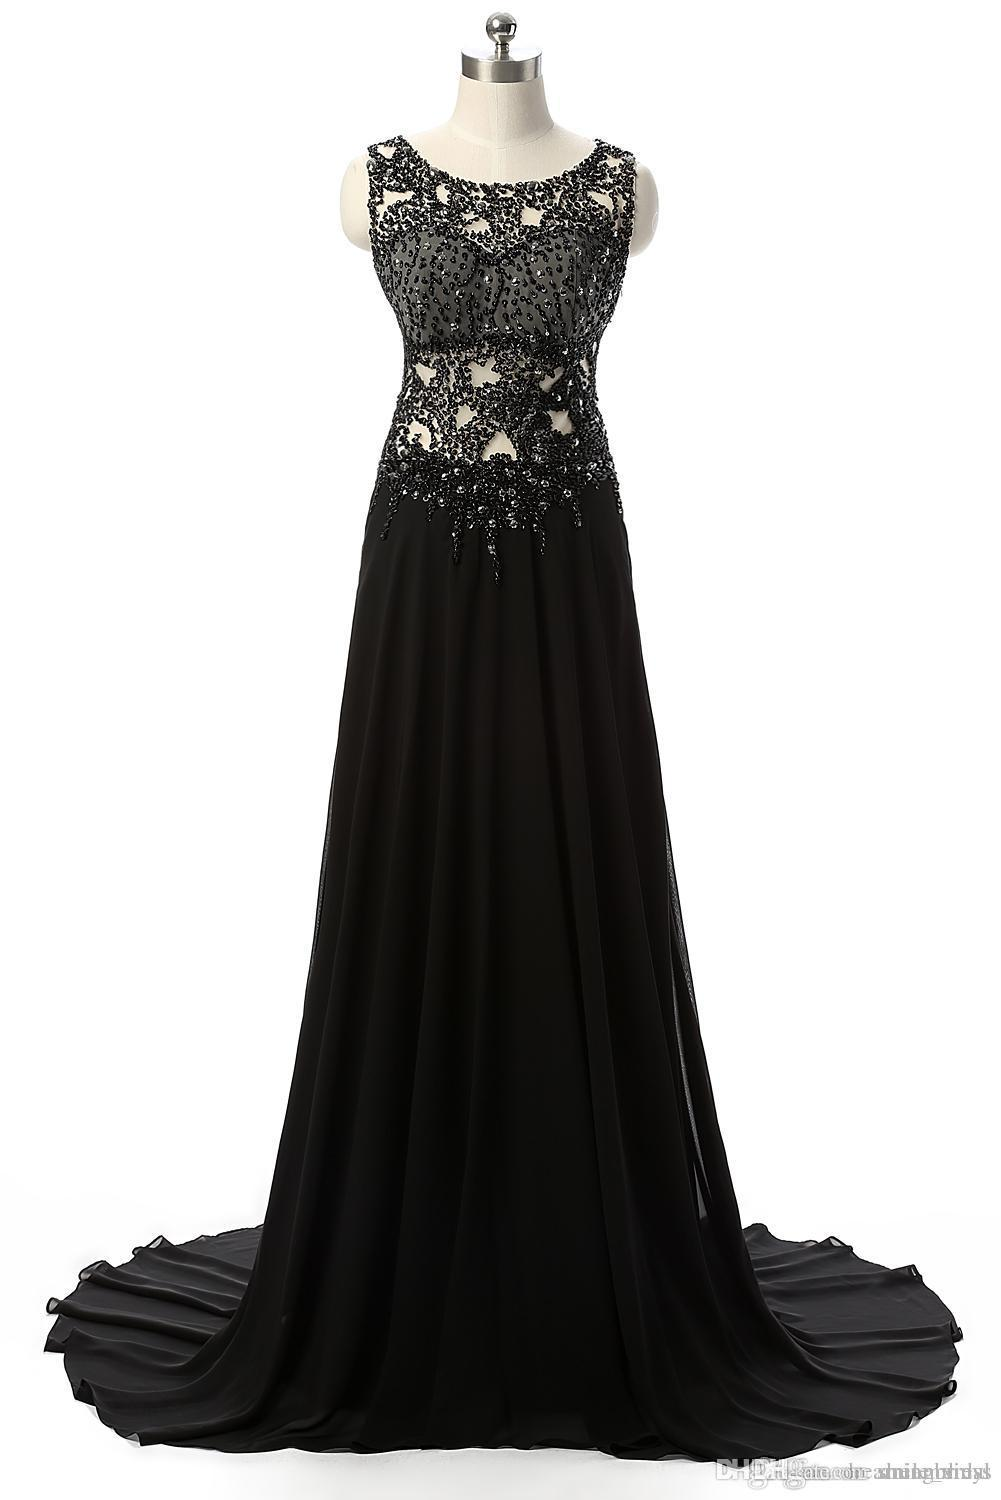 Black Evening Dresses Long A Line See Through Beads Chiffon Sweep Train Formal Party Prom Dresses 2018 For Women JMC55